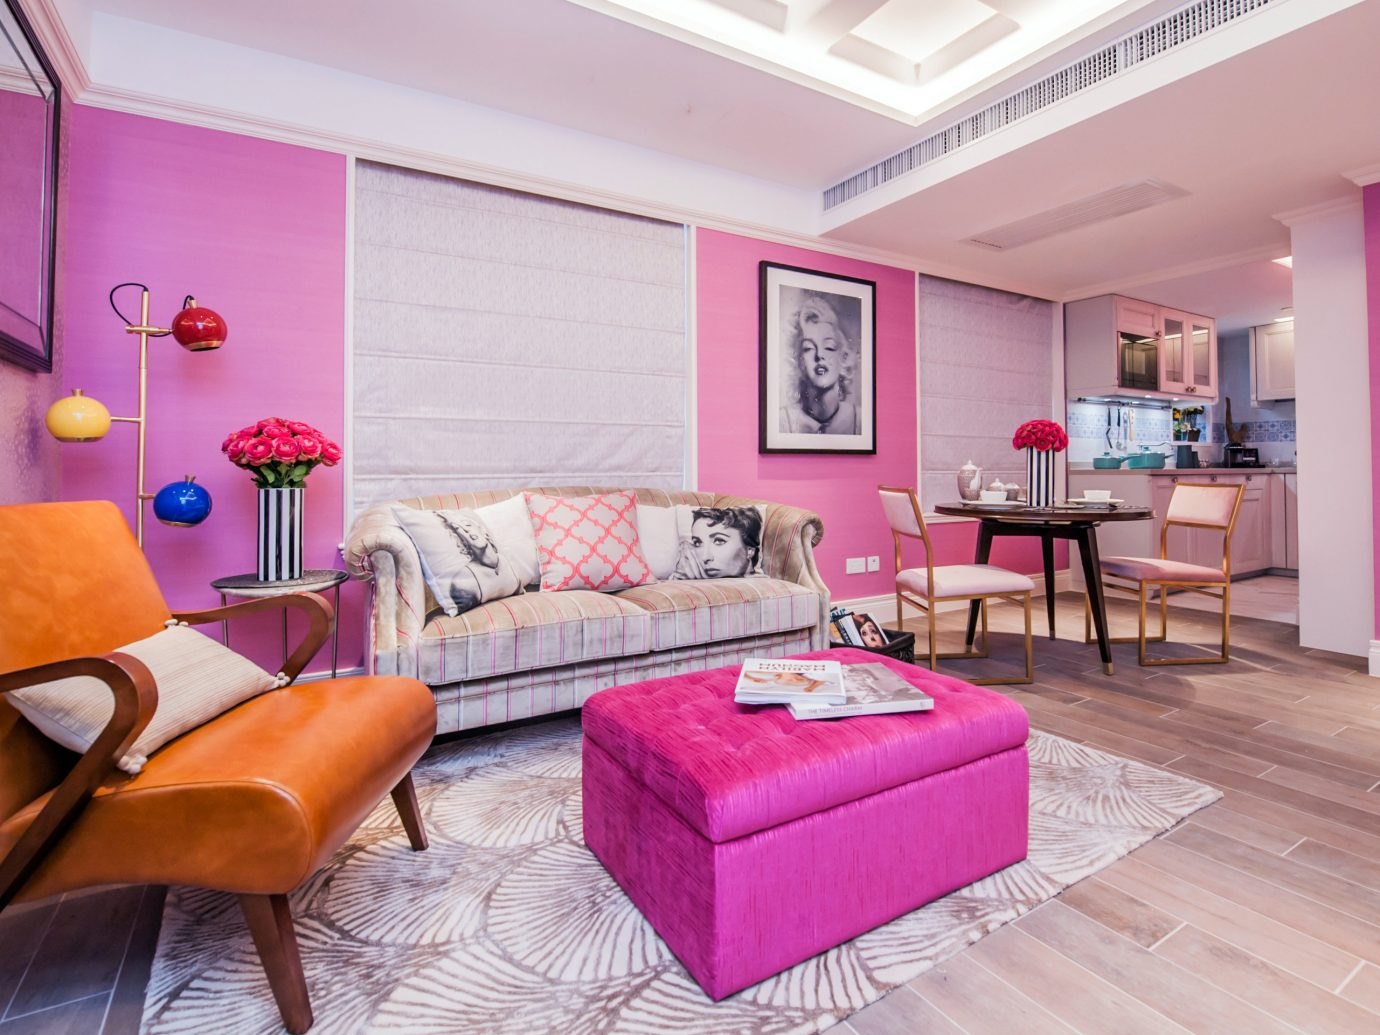 Hotels floor indoor wall room Living pink property ceiling living room real estate Bedroom home interior design hardwood estate furniture Suite cottage bed sheet apartment purple colored